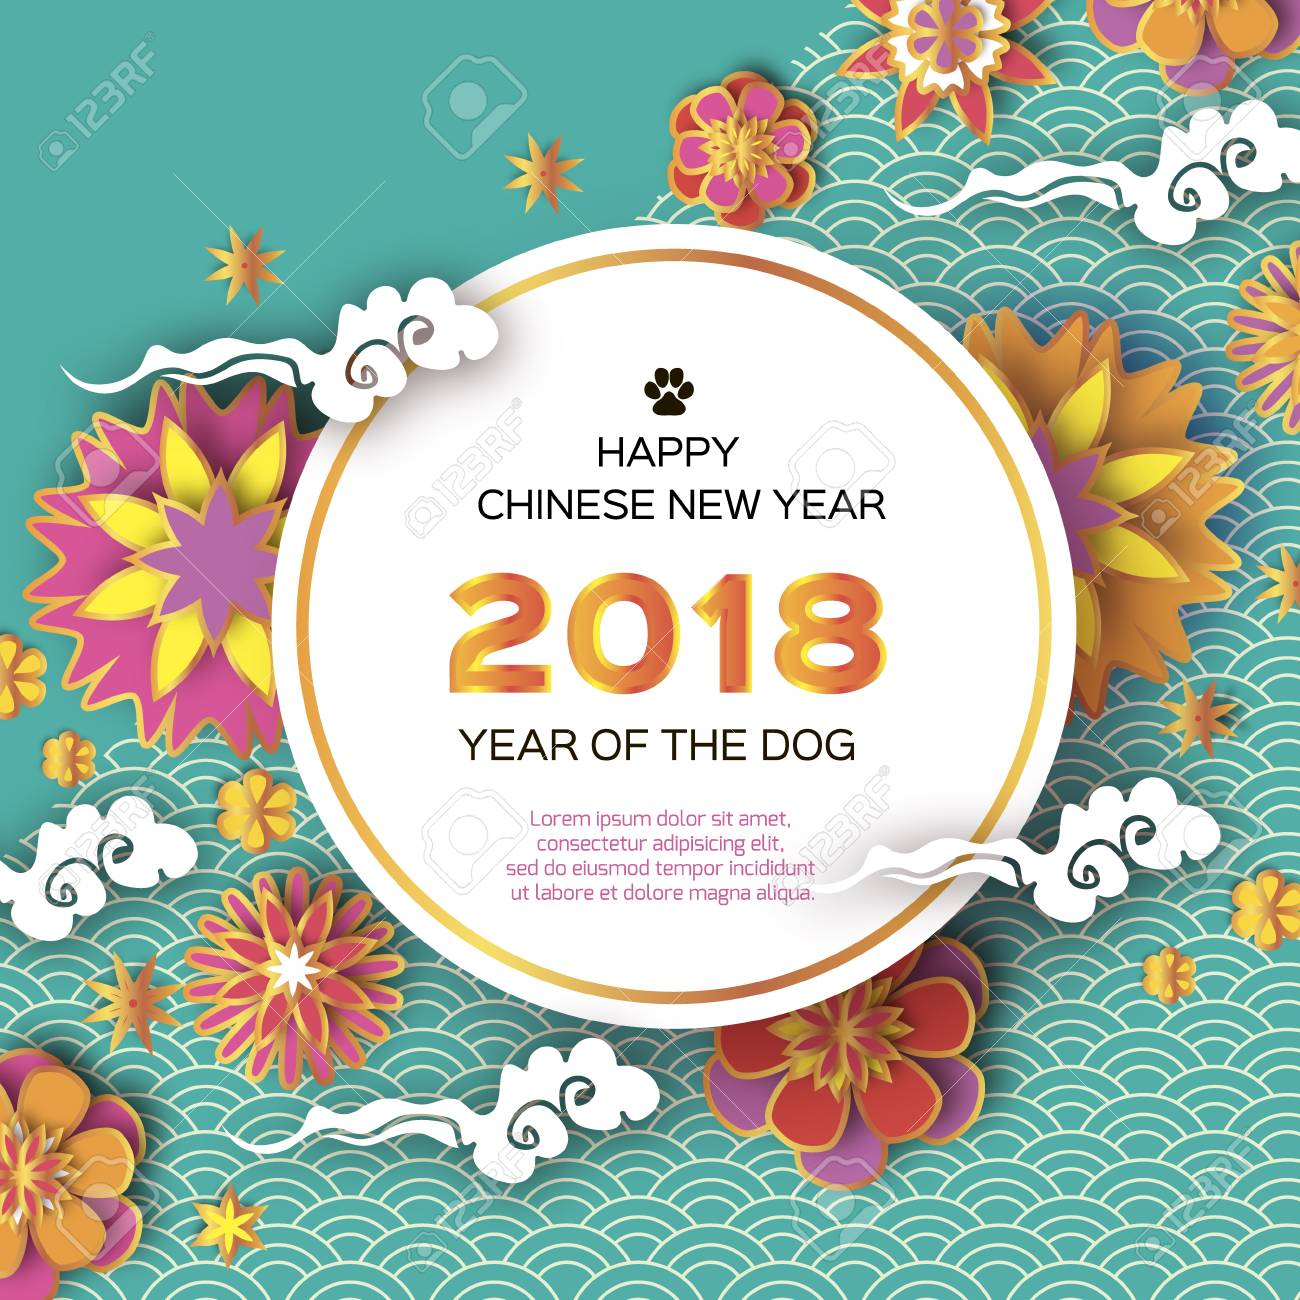 Happy Chinese New Year 2018 Greeting card. Year of the Dog. Origami flowers. Text. Circle frame. Graceful floral background in paper cut style. Nature. Cloud. Colorful. - 93216079